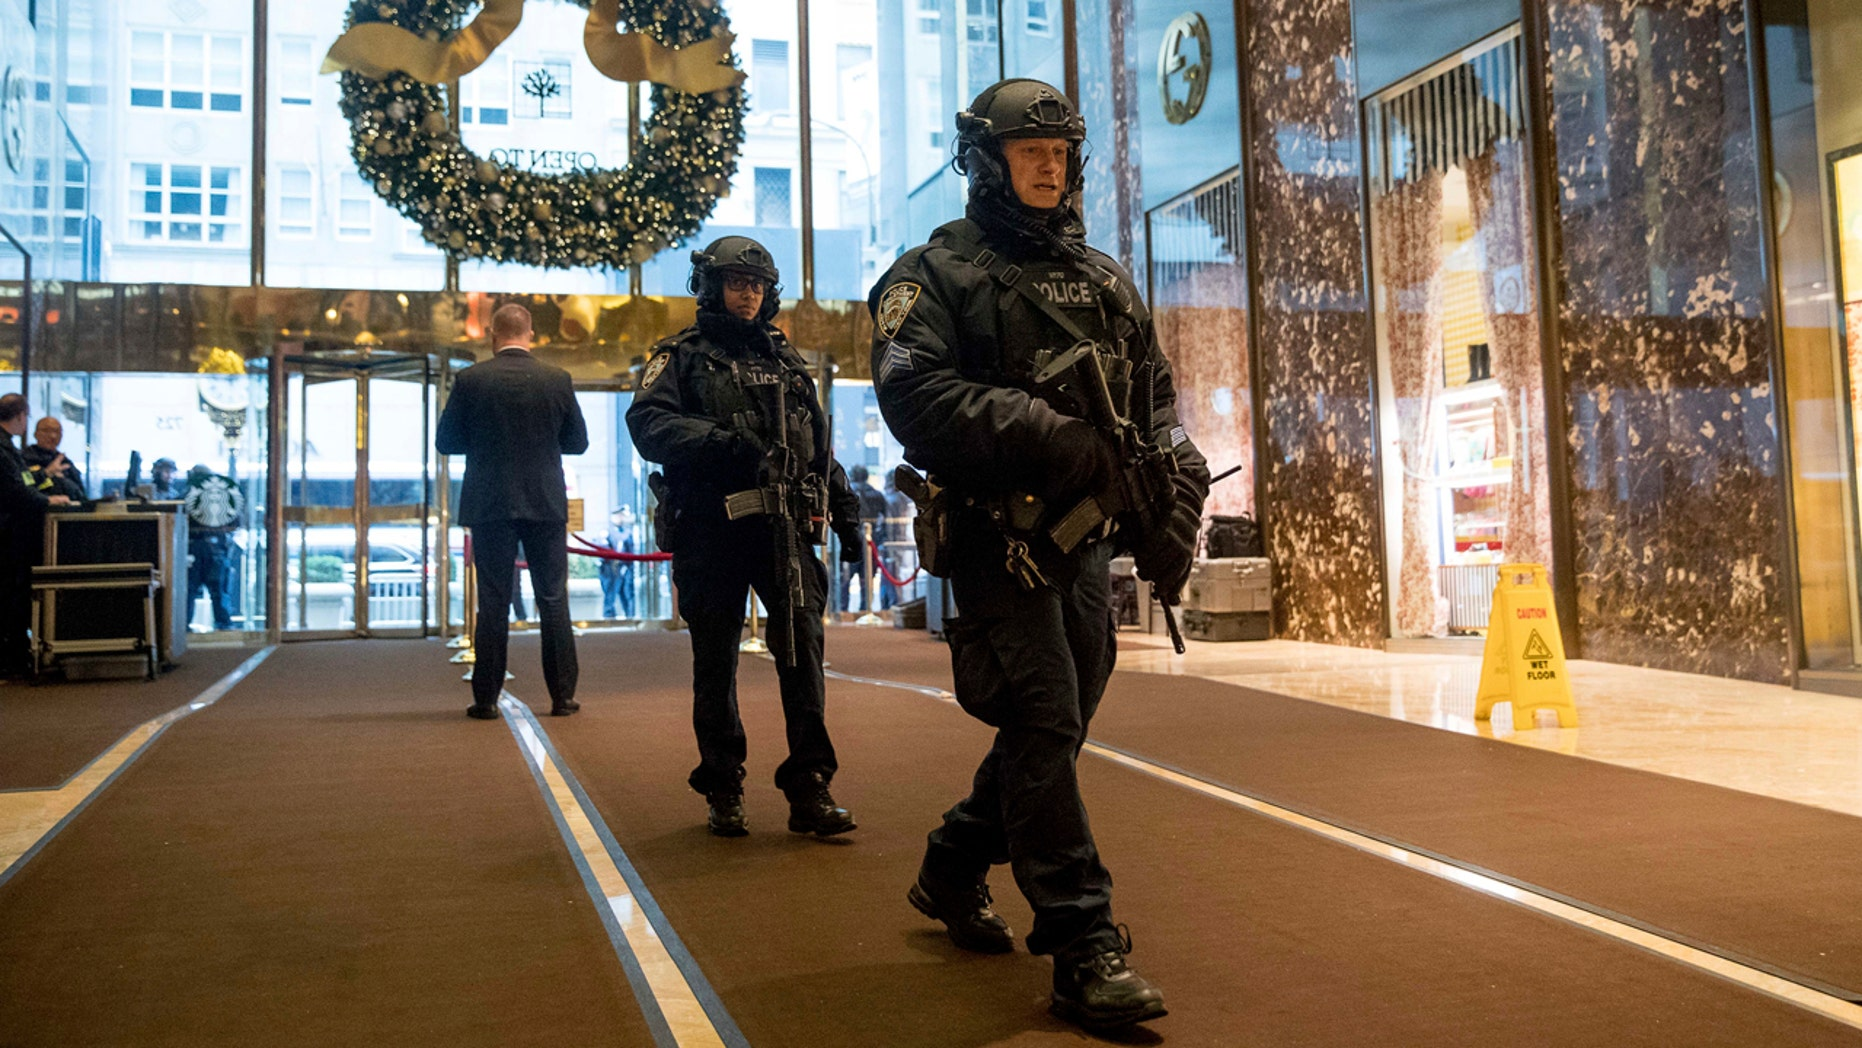 Dec. 5, 2016: Police officers walk through the lobby of Trump Tower in New York.